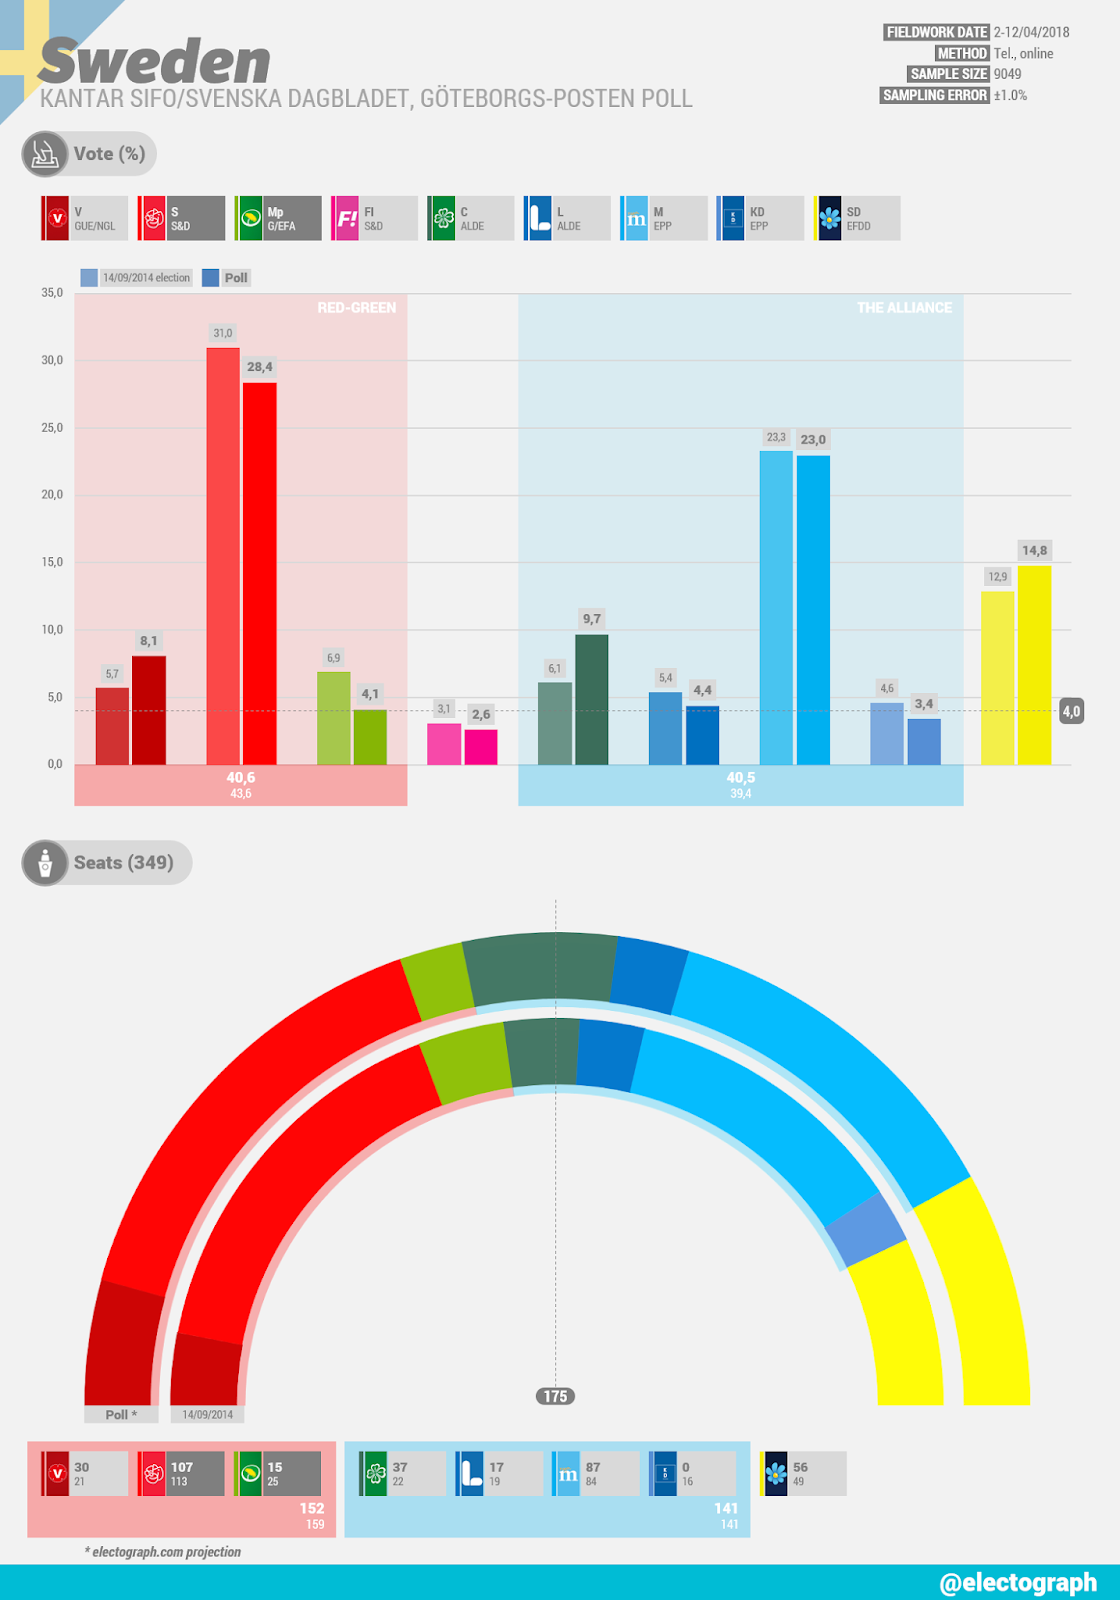 SWEDEN Kantar SIFO poll chart for Svenska Dagbladet and Göteborgs-Posten, April 2018